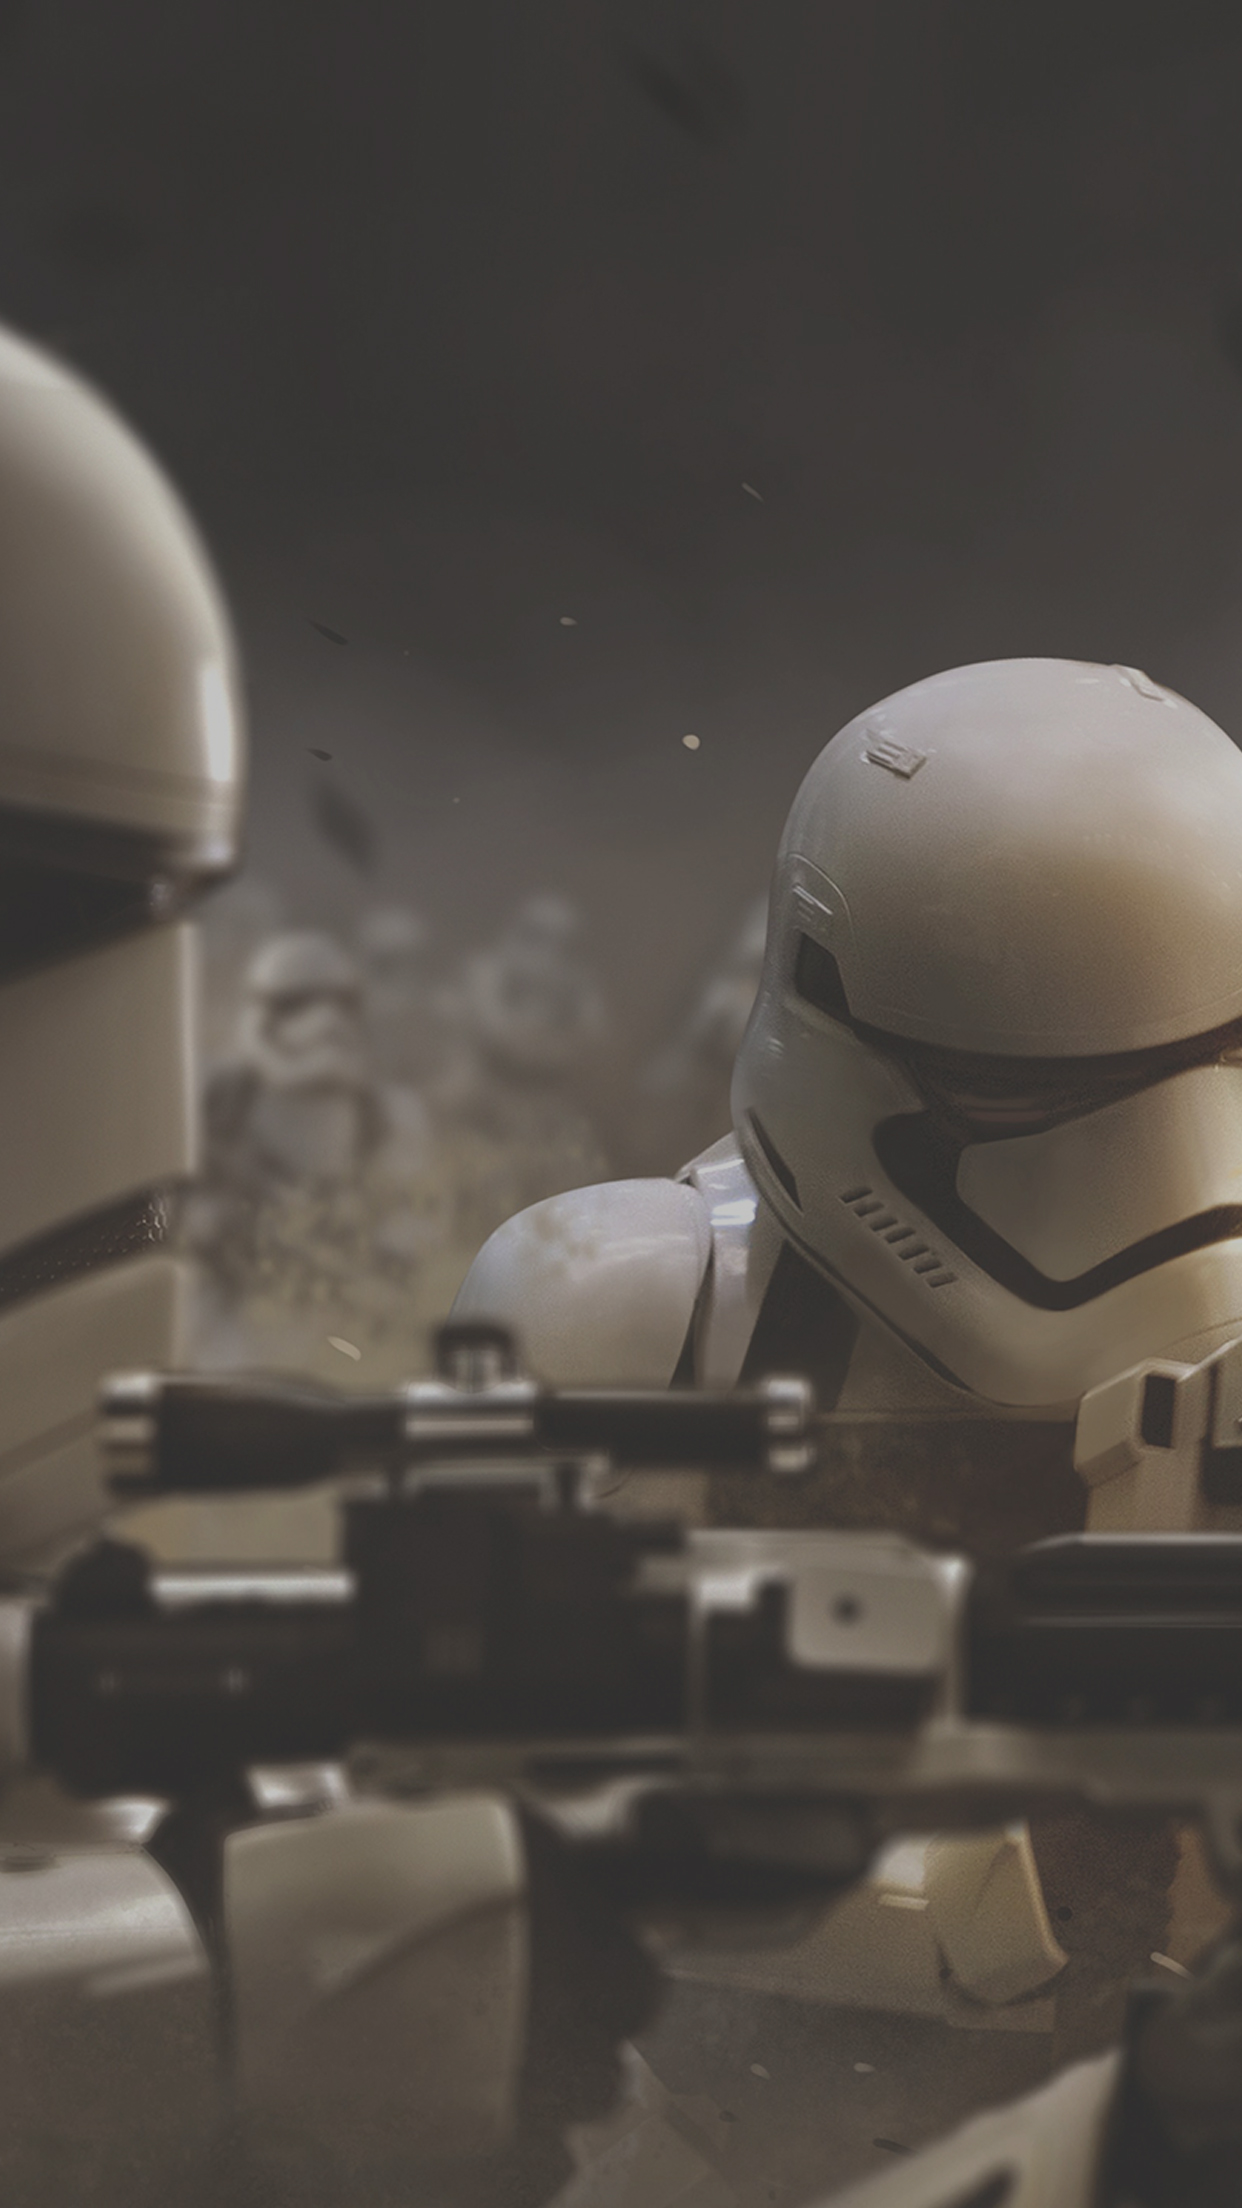 The-Force-Awakens-Stormtroopers